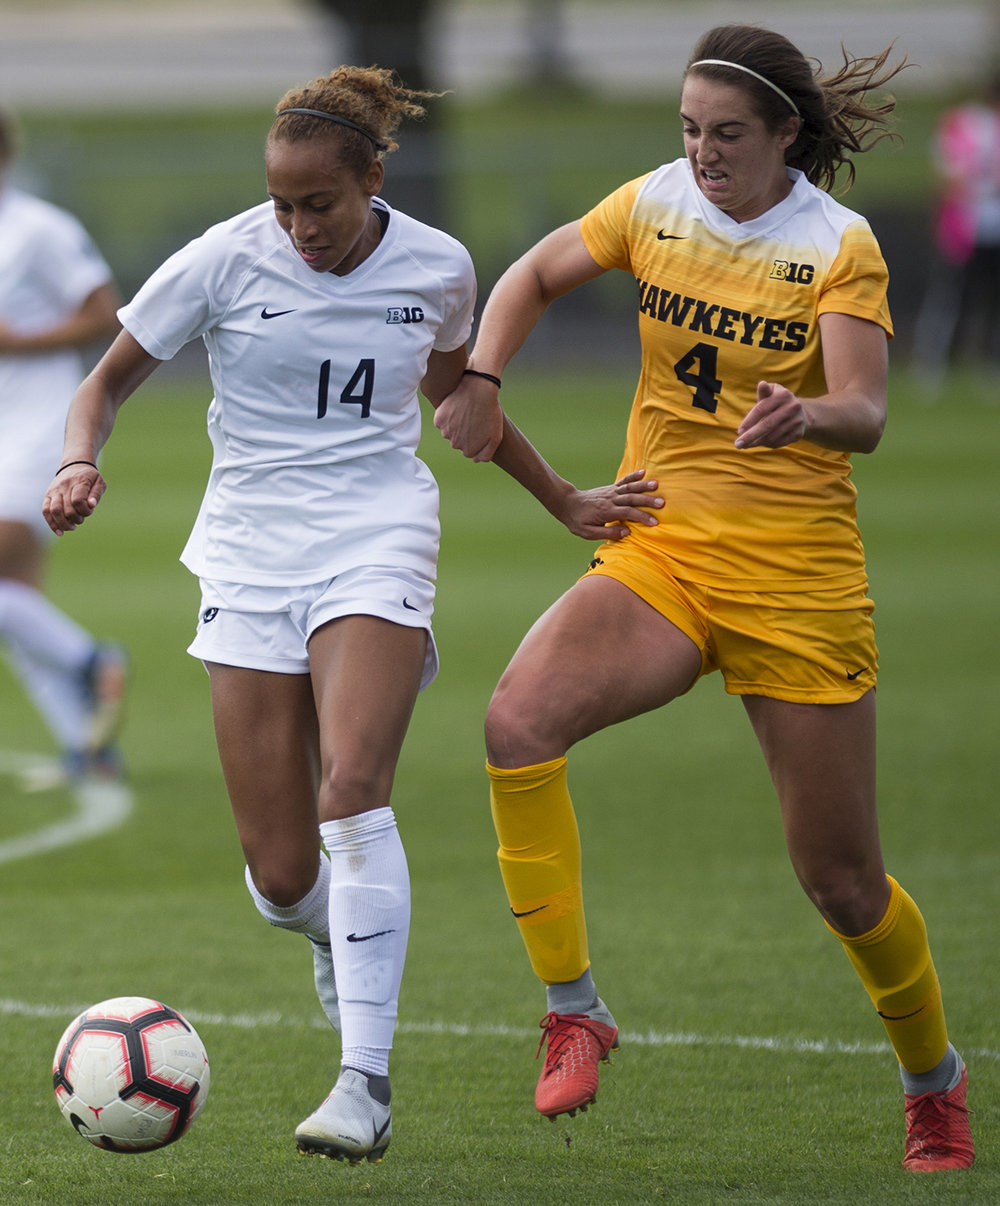 Defender Ellie Jean (14) and forward Kaleigh Haus (4) fight for dominance over the ball during the Penn State v. Iowa women's soccer match at Jeffrey Field on Sunday, September 30, 2018. Penn State defeated Iowa 2-0.